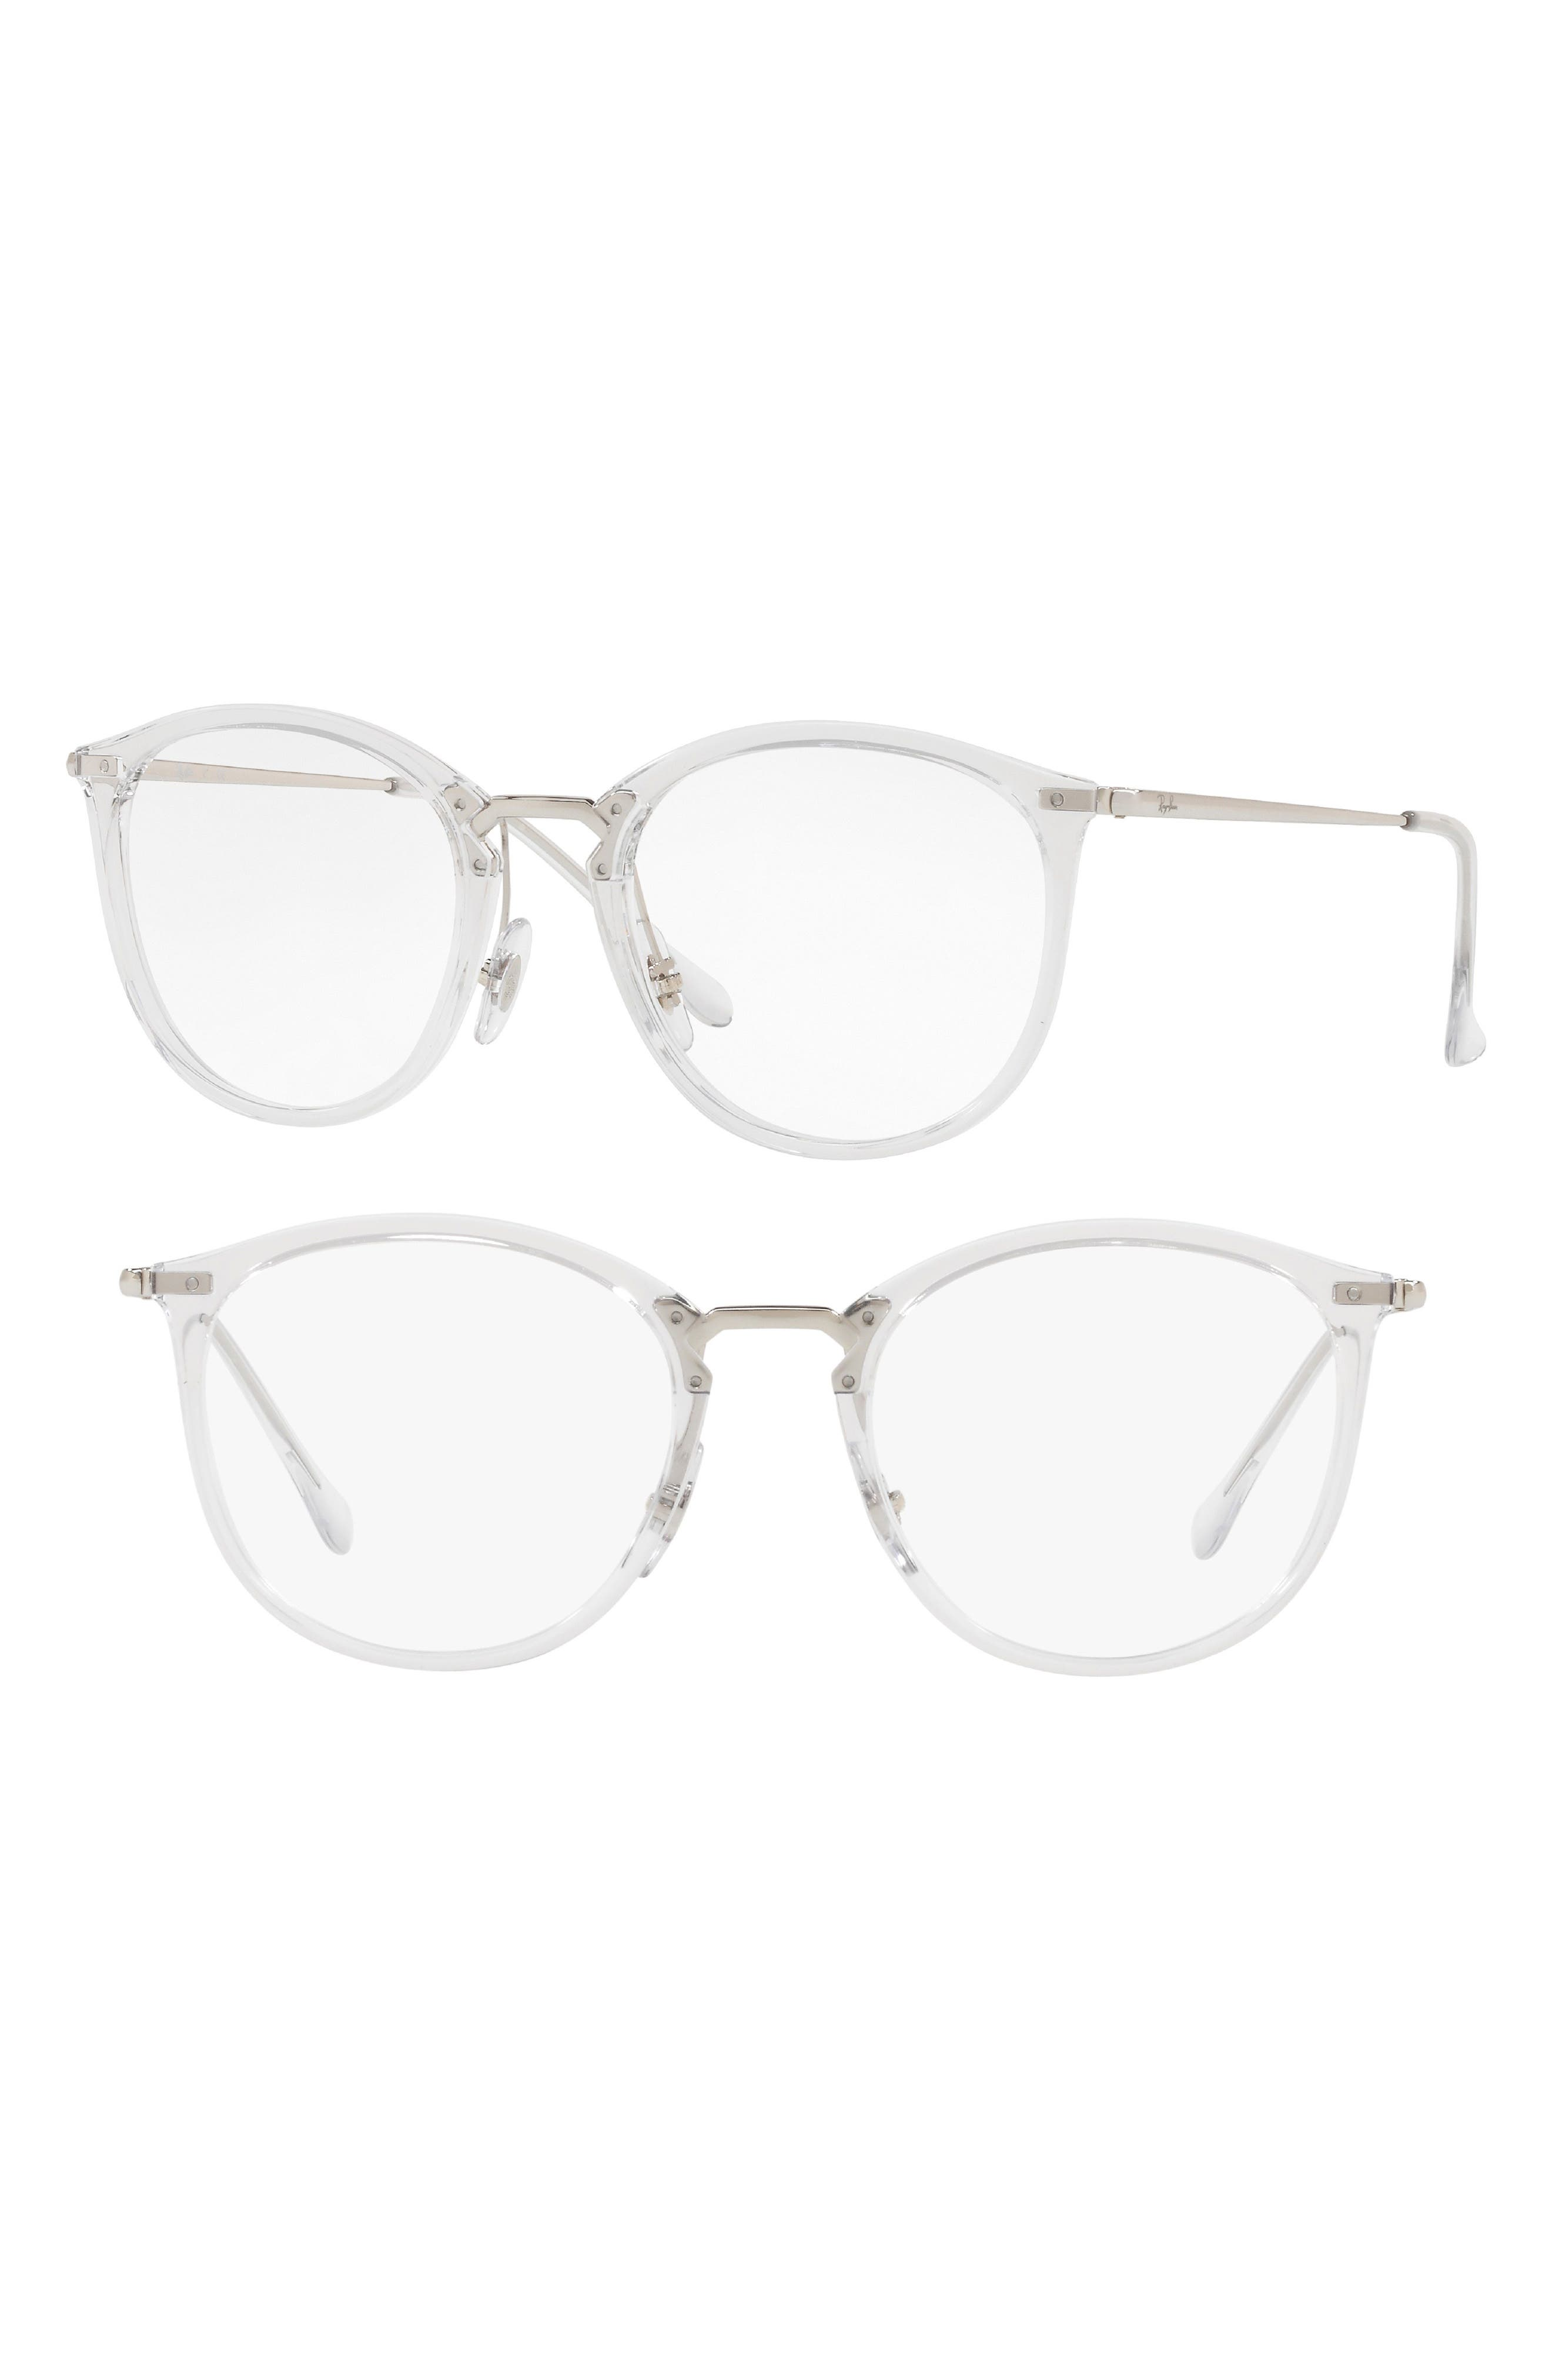 Ray-Ban 49mm Optical Glasses